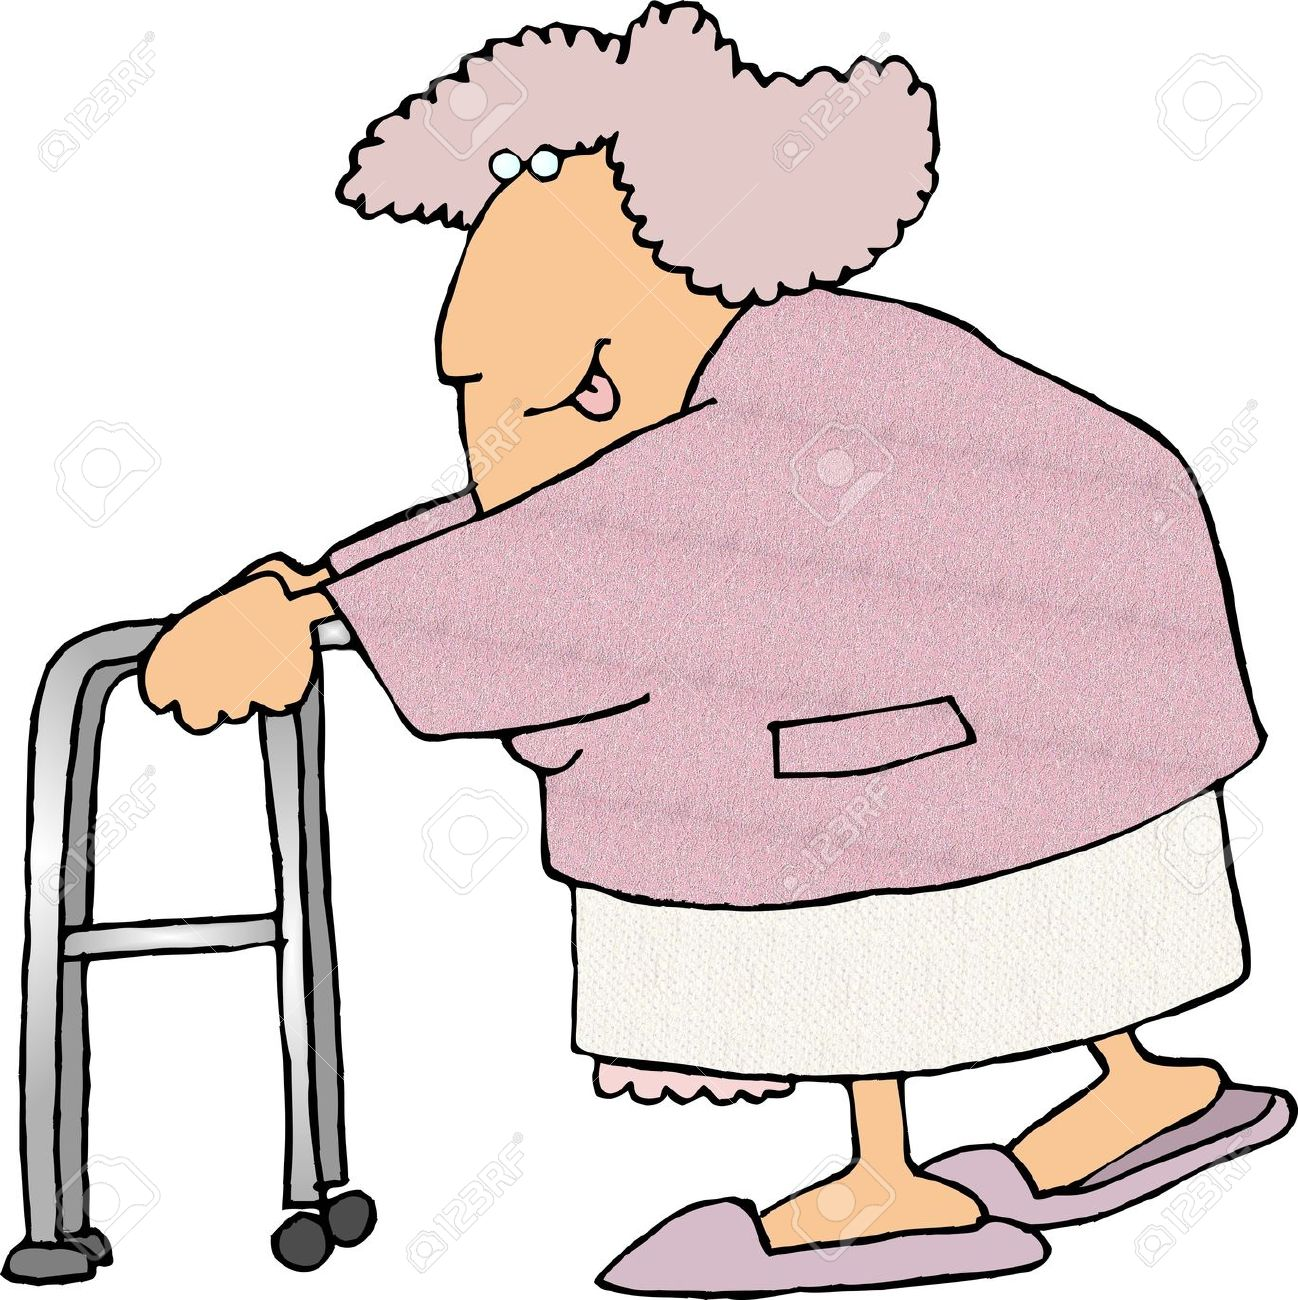 Elderly Clipart Free | Free download best Elderly Clipart ...